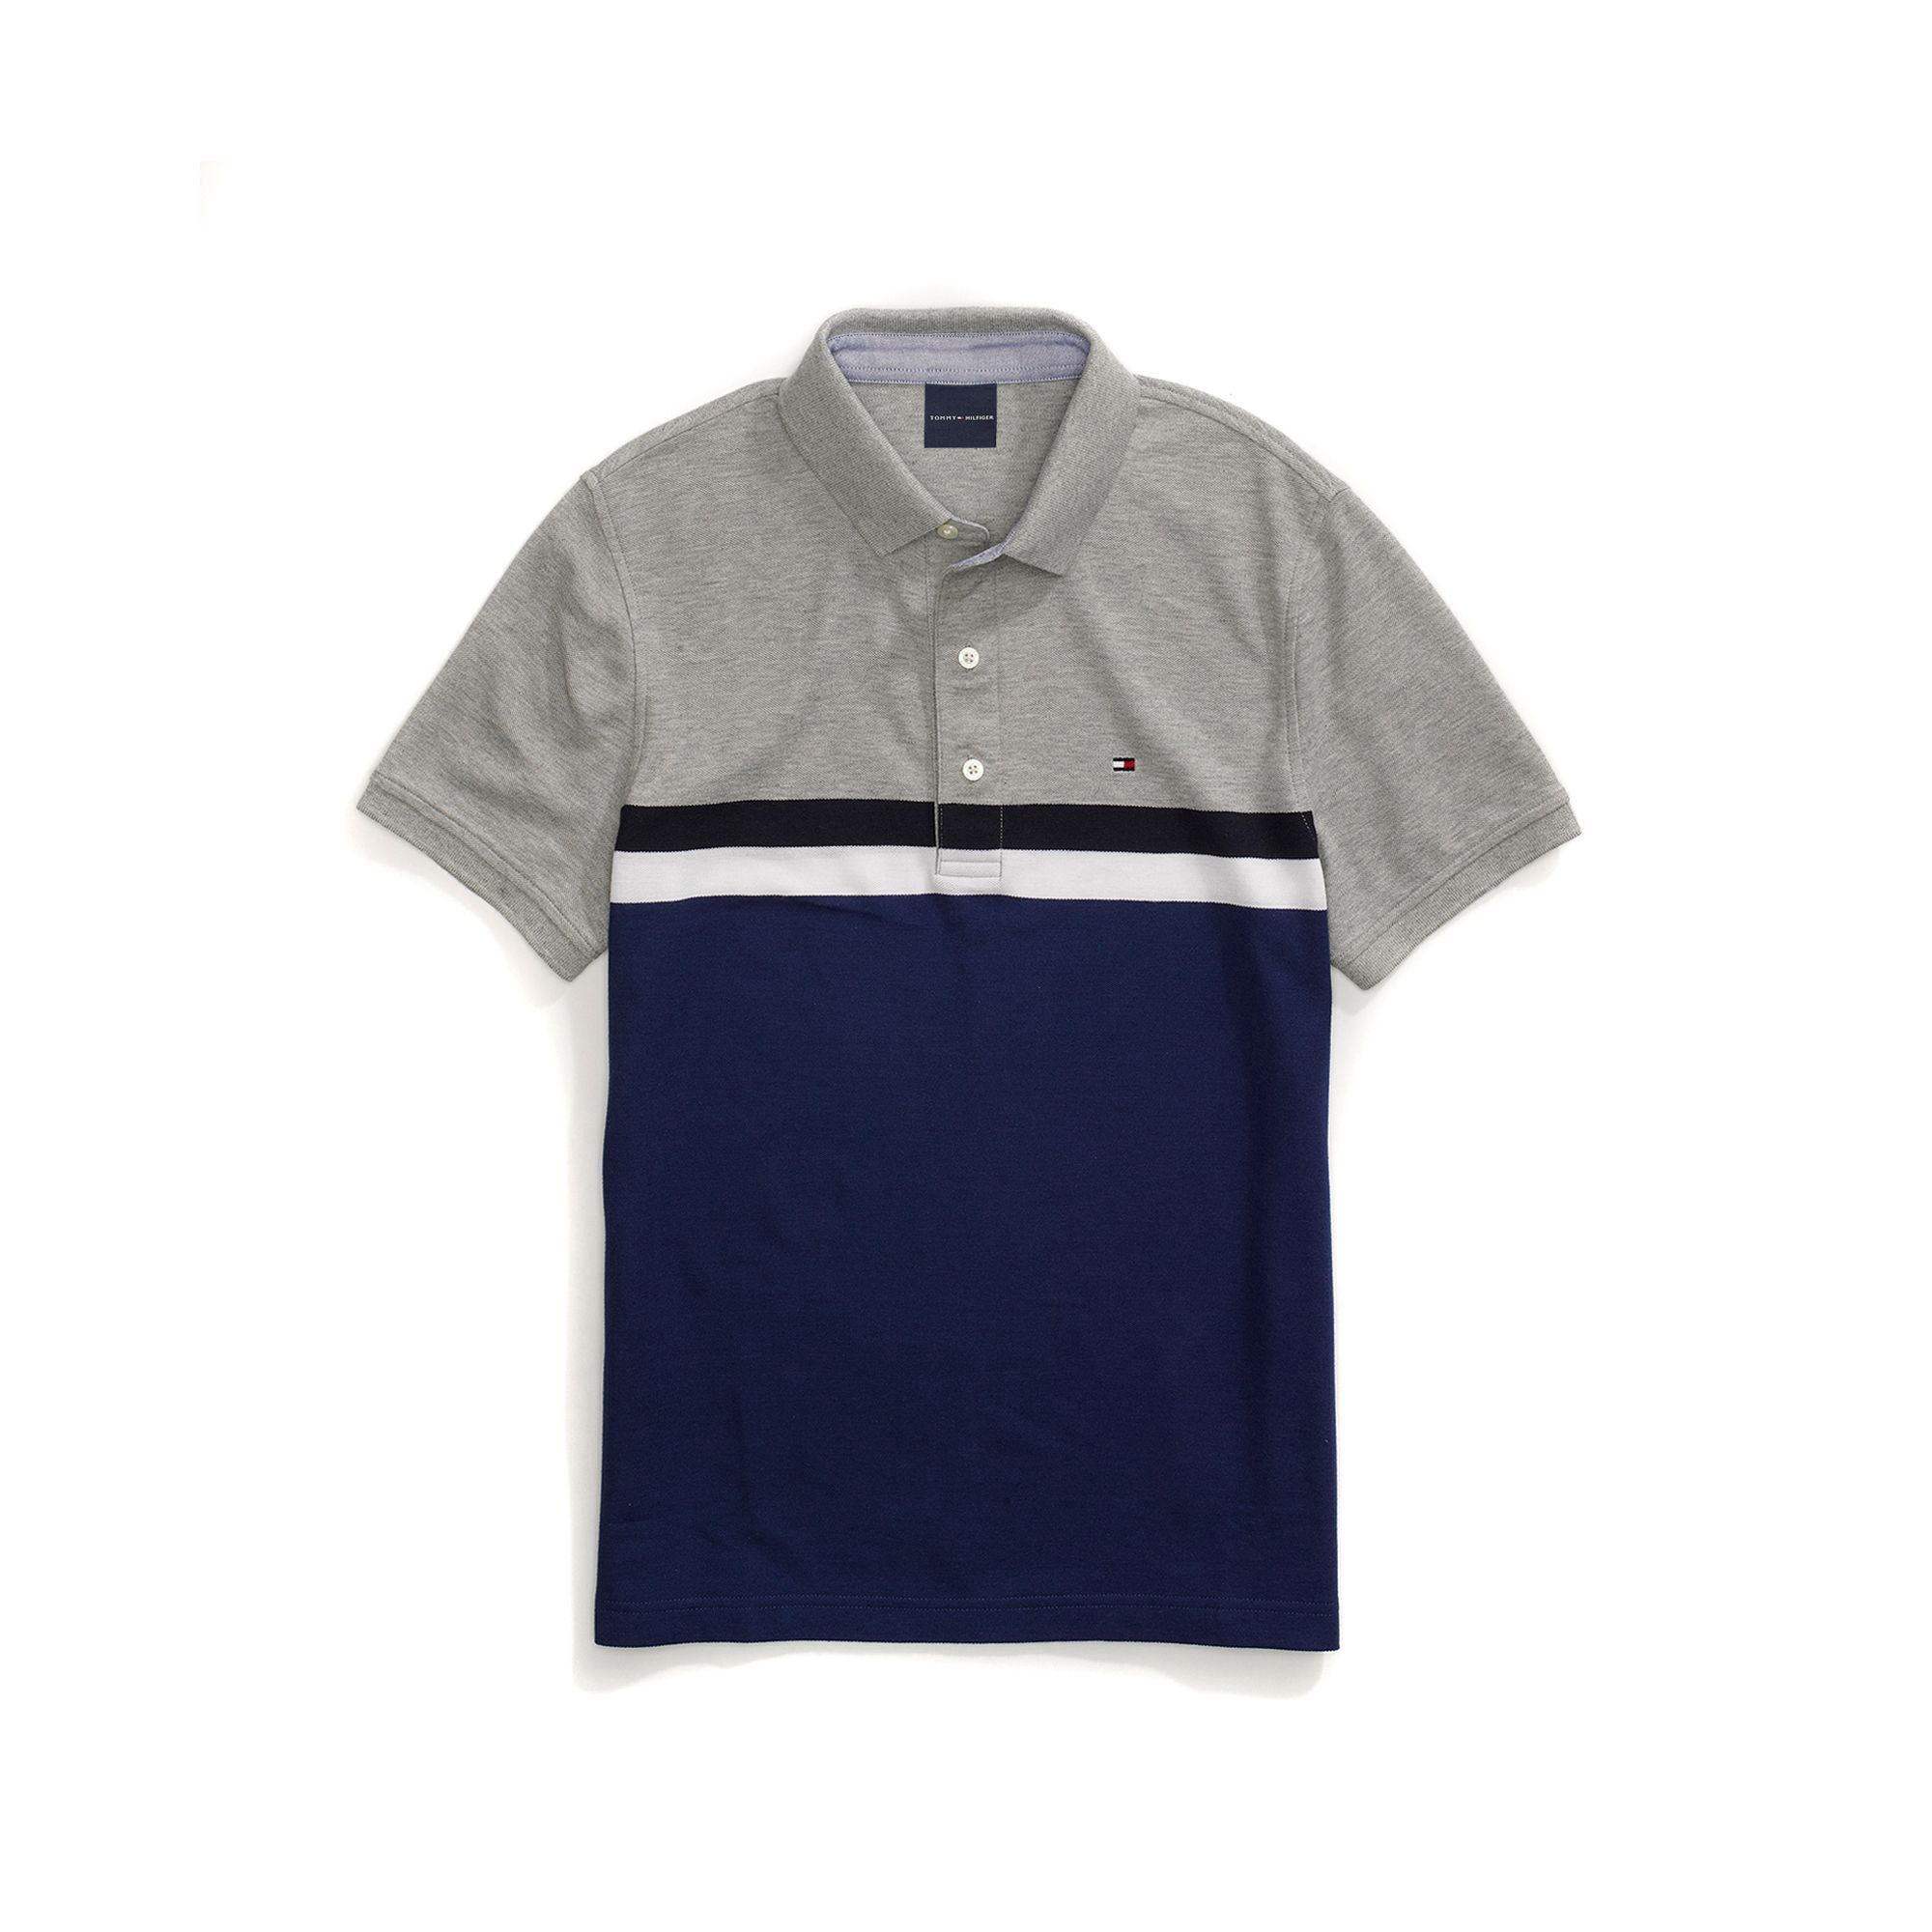 fb60c77a0 TOMMY HILFIGER Custom Fit Colorblock Performance Polo. #tommyhilfiger #cloth  #